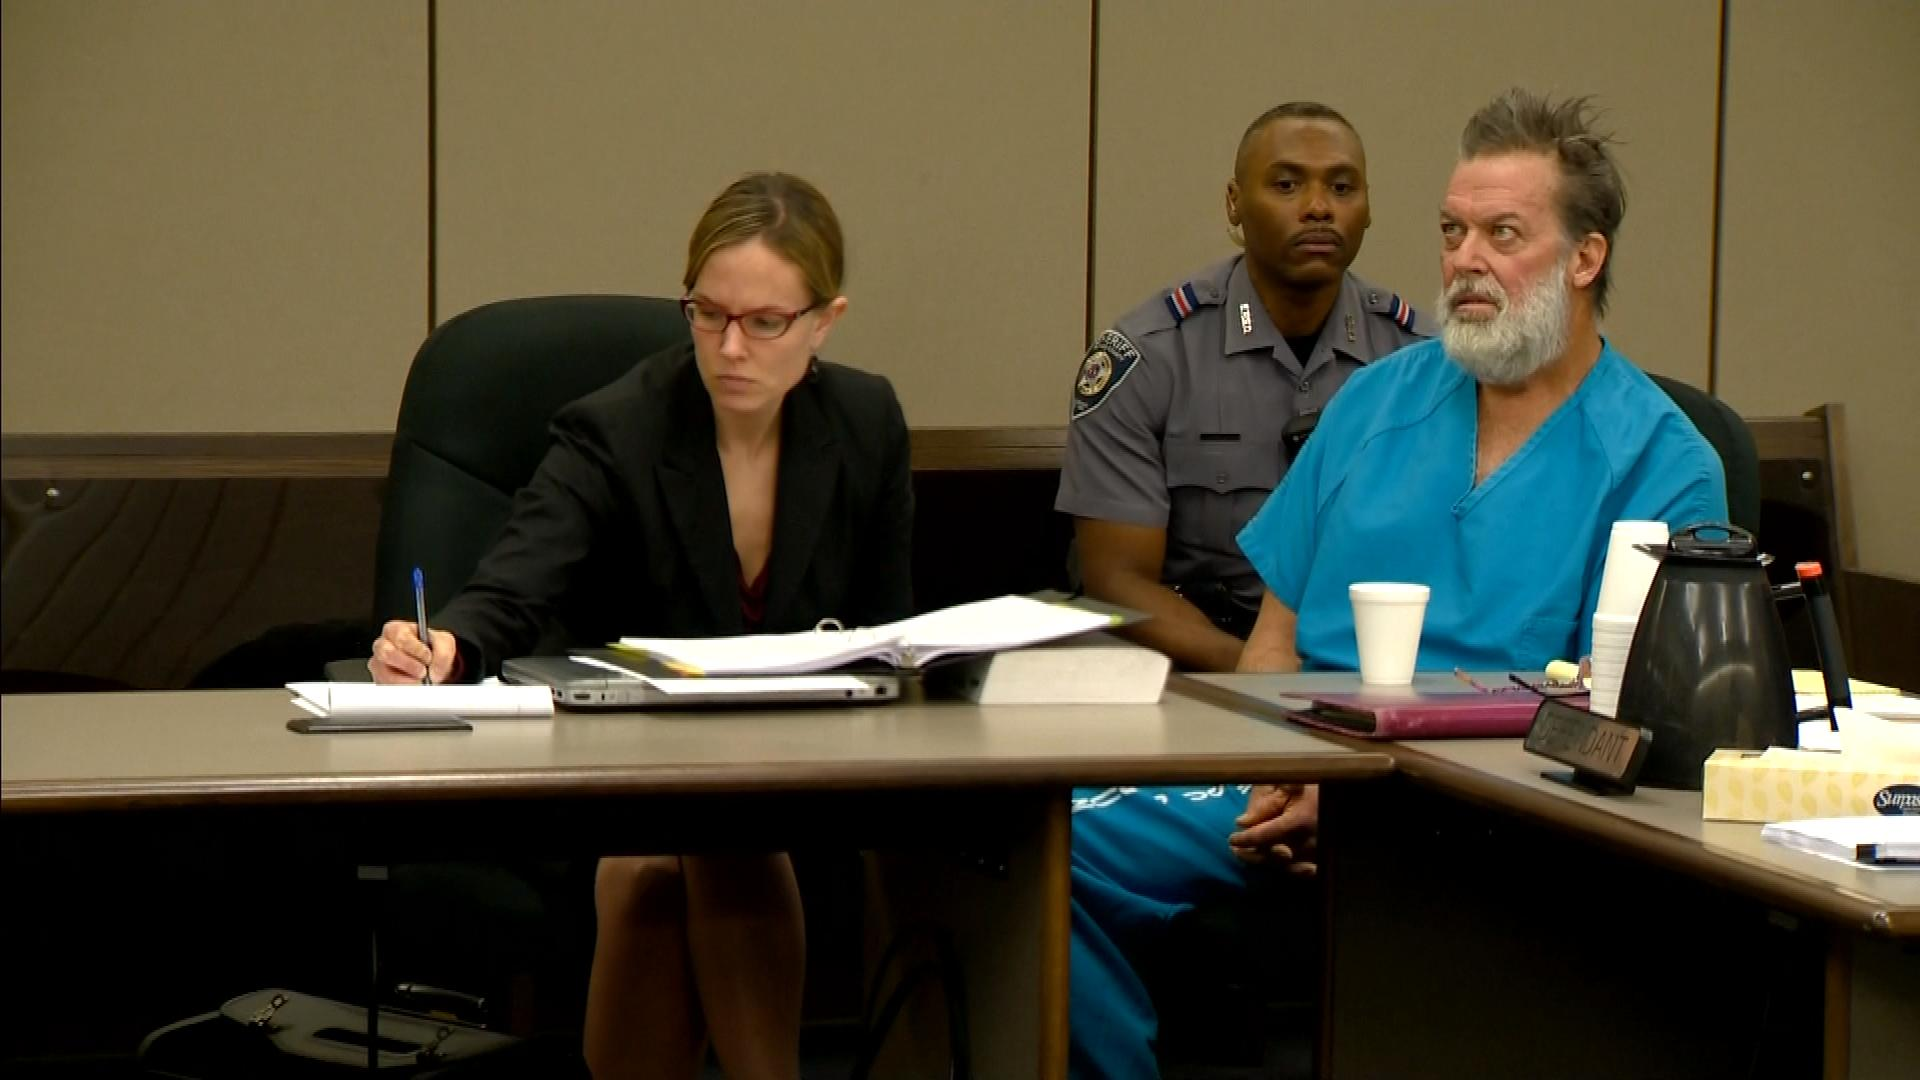 Robert Lewis Dear in court on Dec. 9, 2015 (credit: CBS)